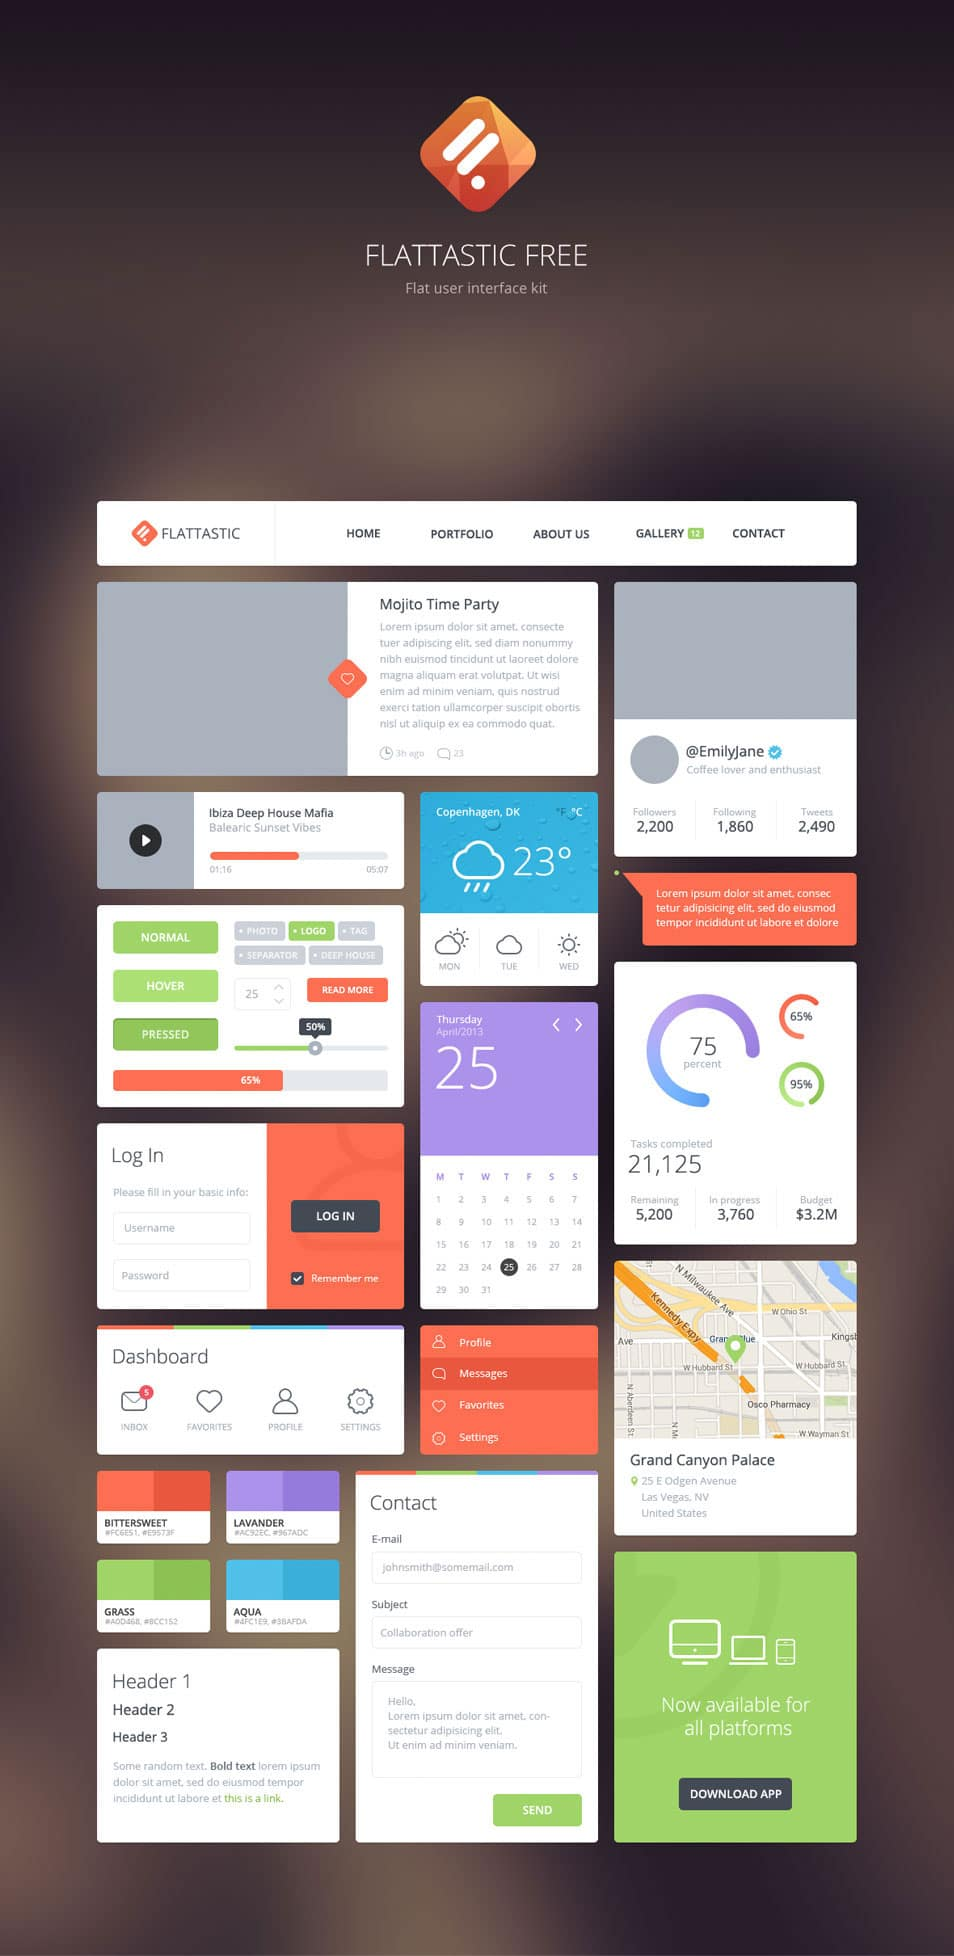 Free Download Flattastic UI kit